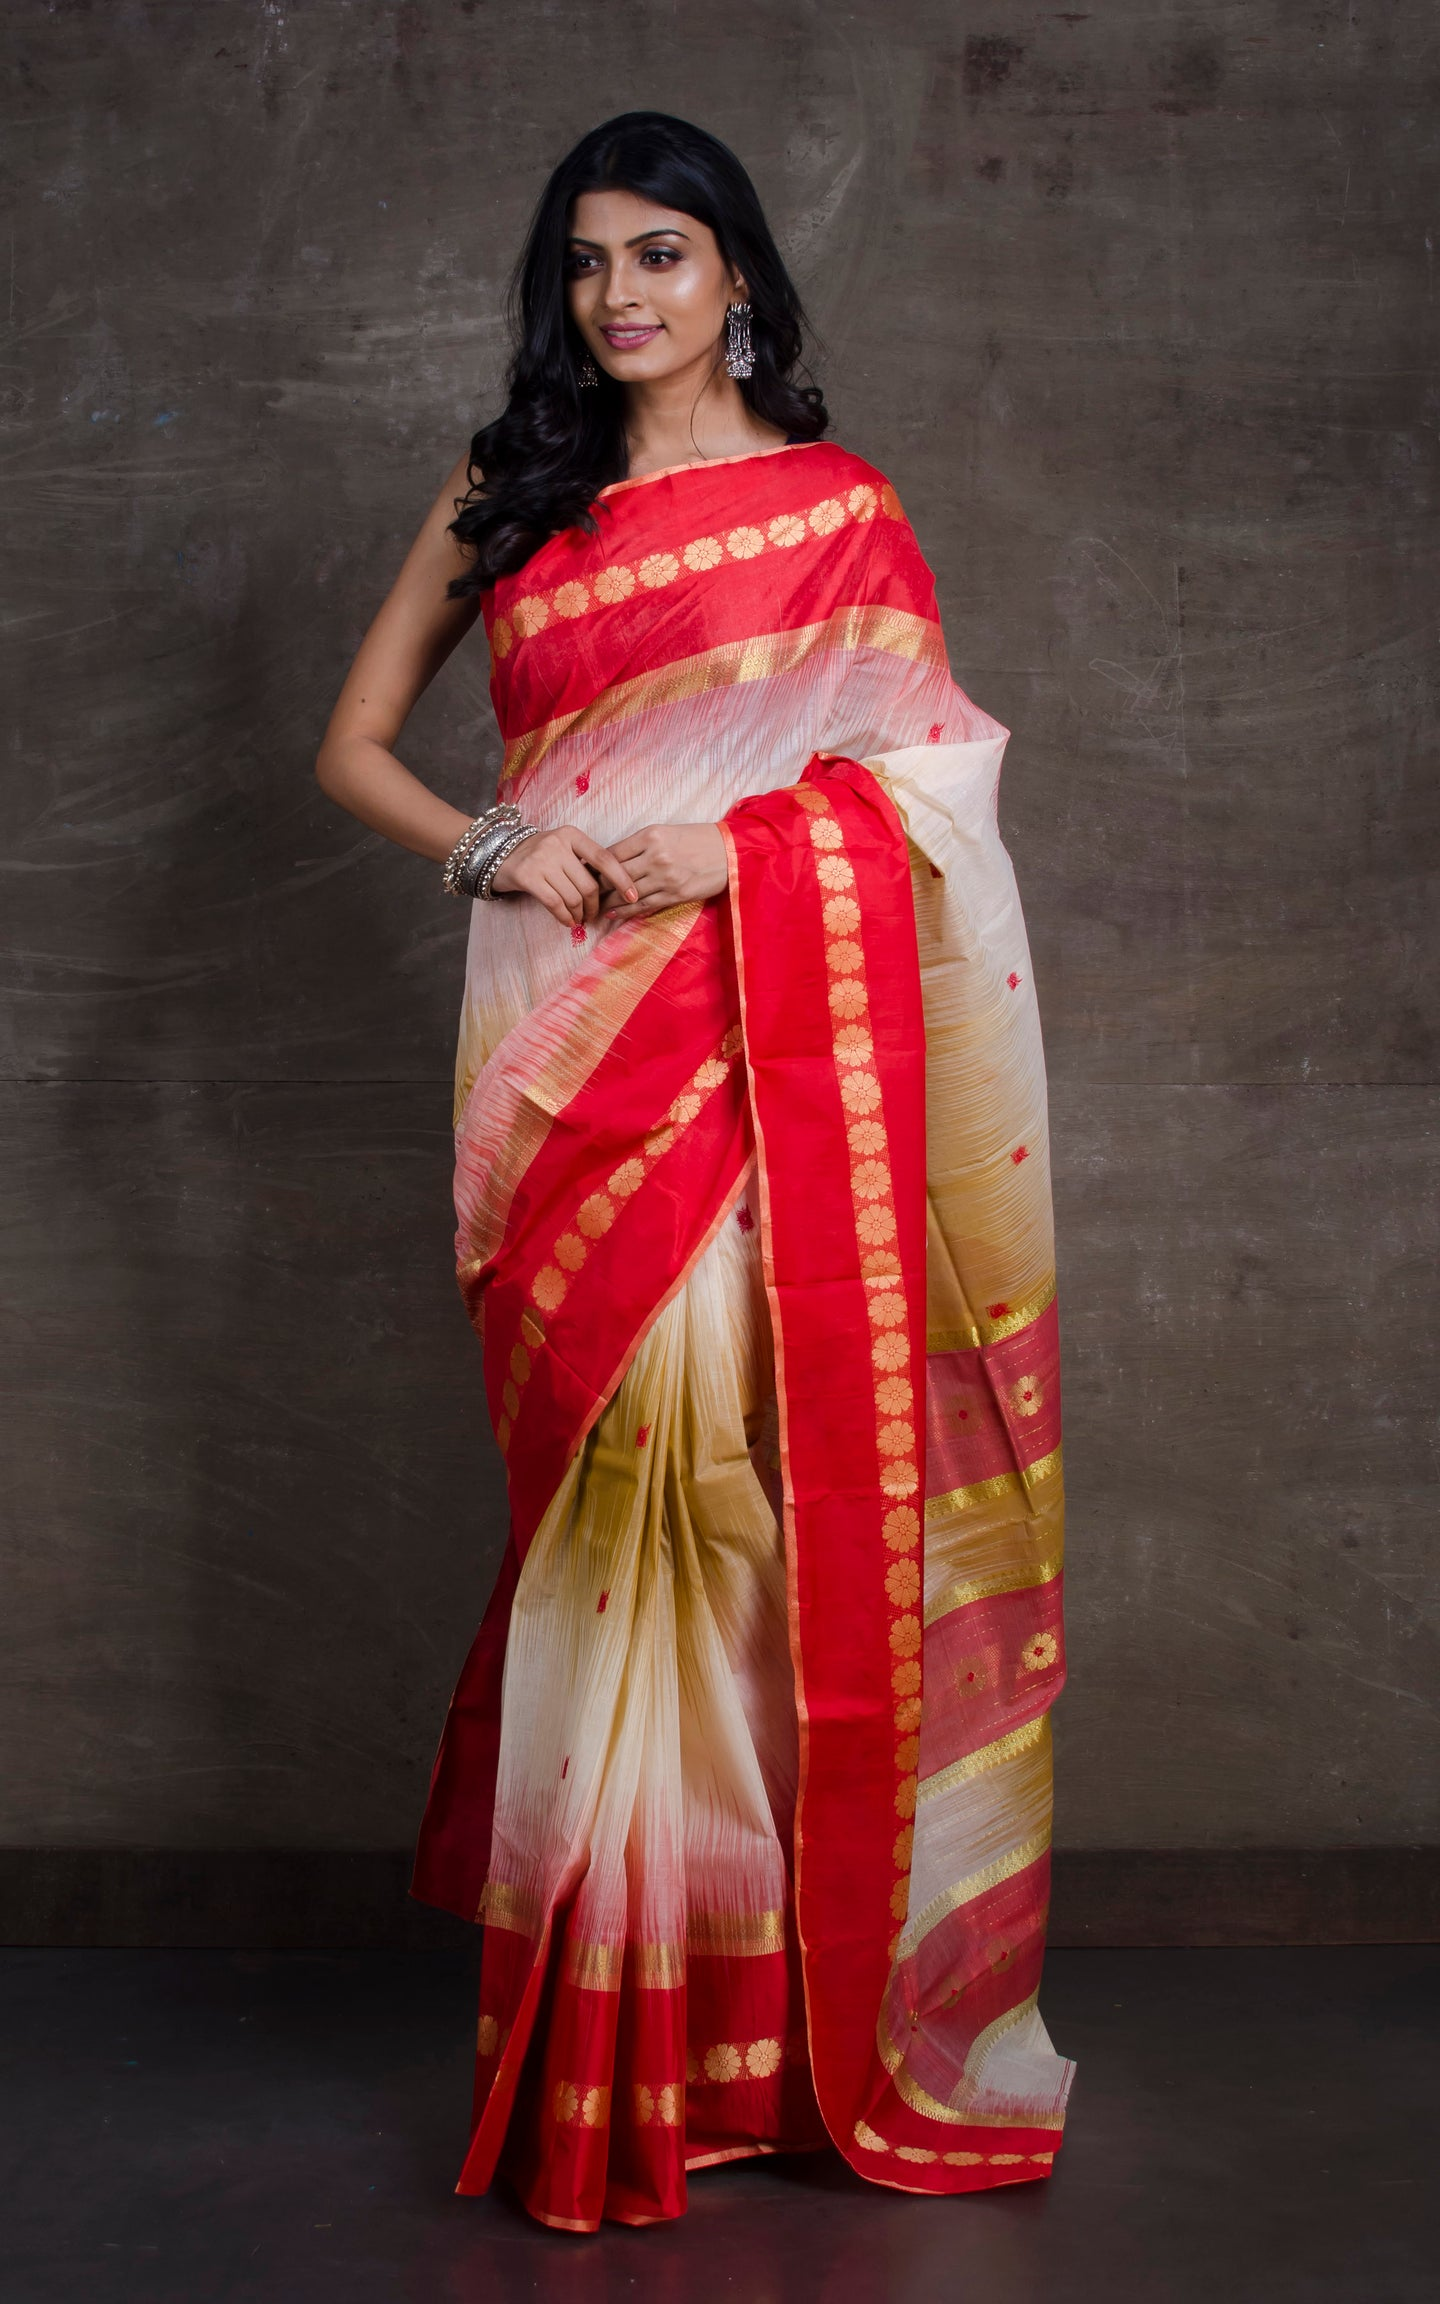 Mahapar Traditional Bengal Tussar Silk Saree in Beige and Red